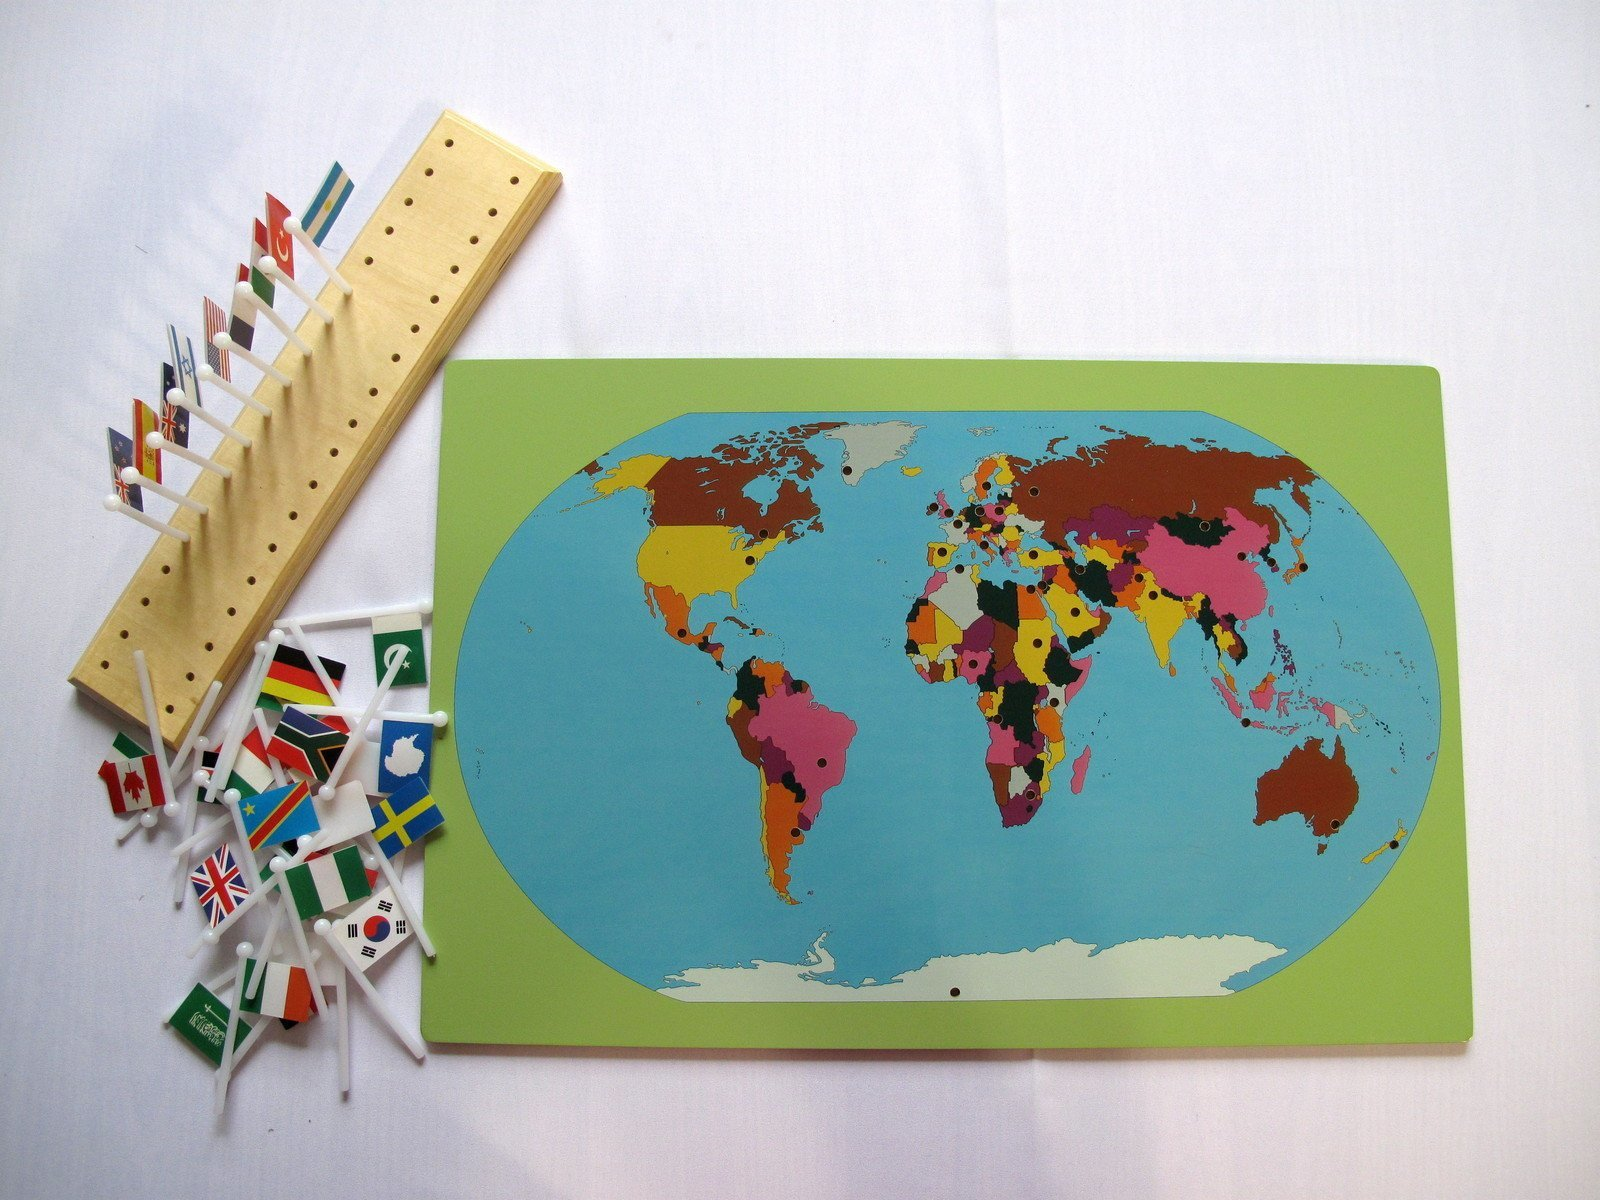 Montessori map with world flags righttolearn montessori map with world flags righttolearn 2 gumiabroncs Choice Image